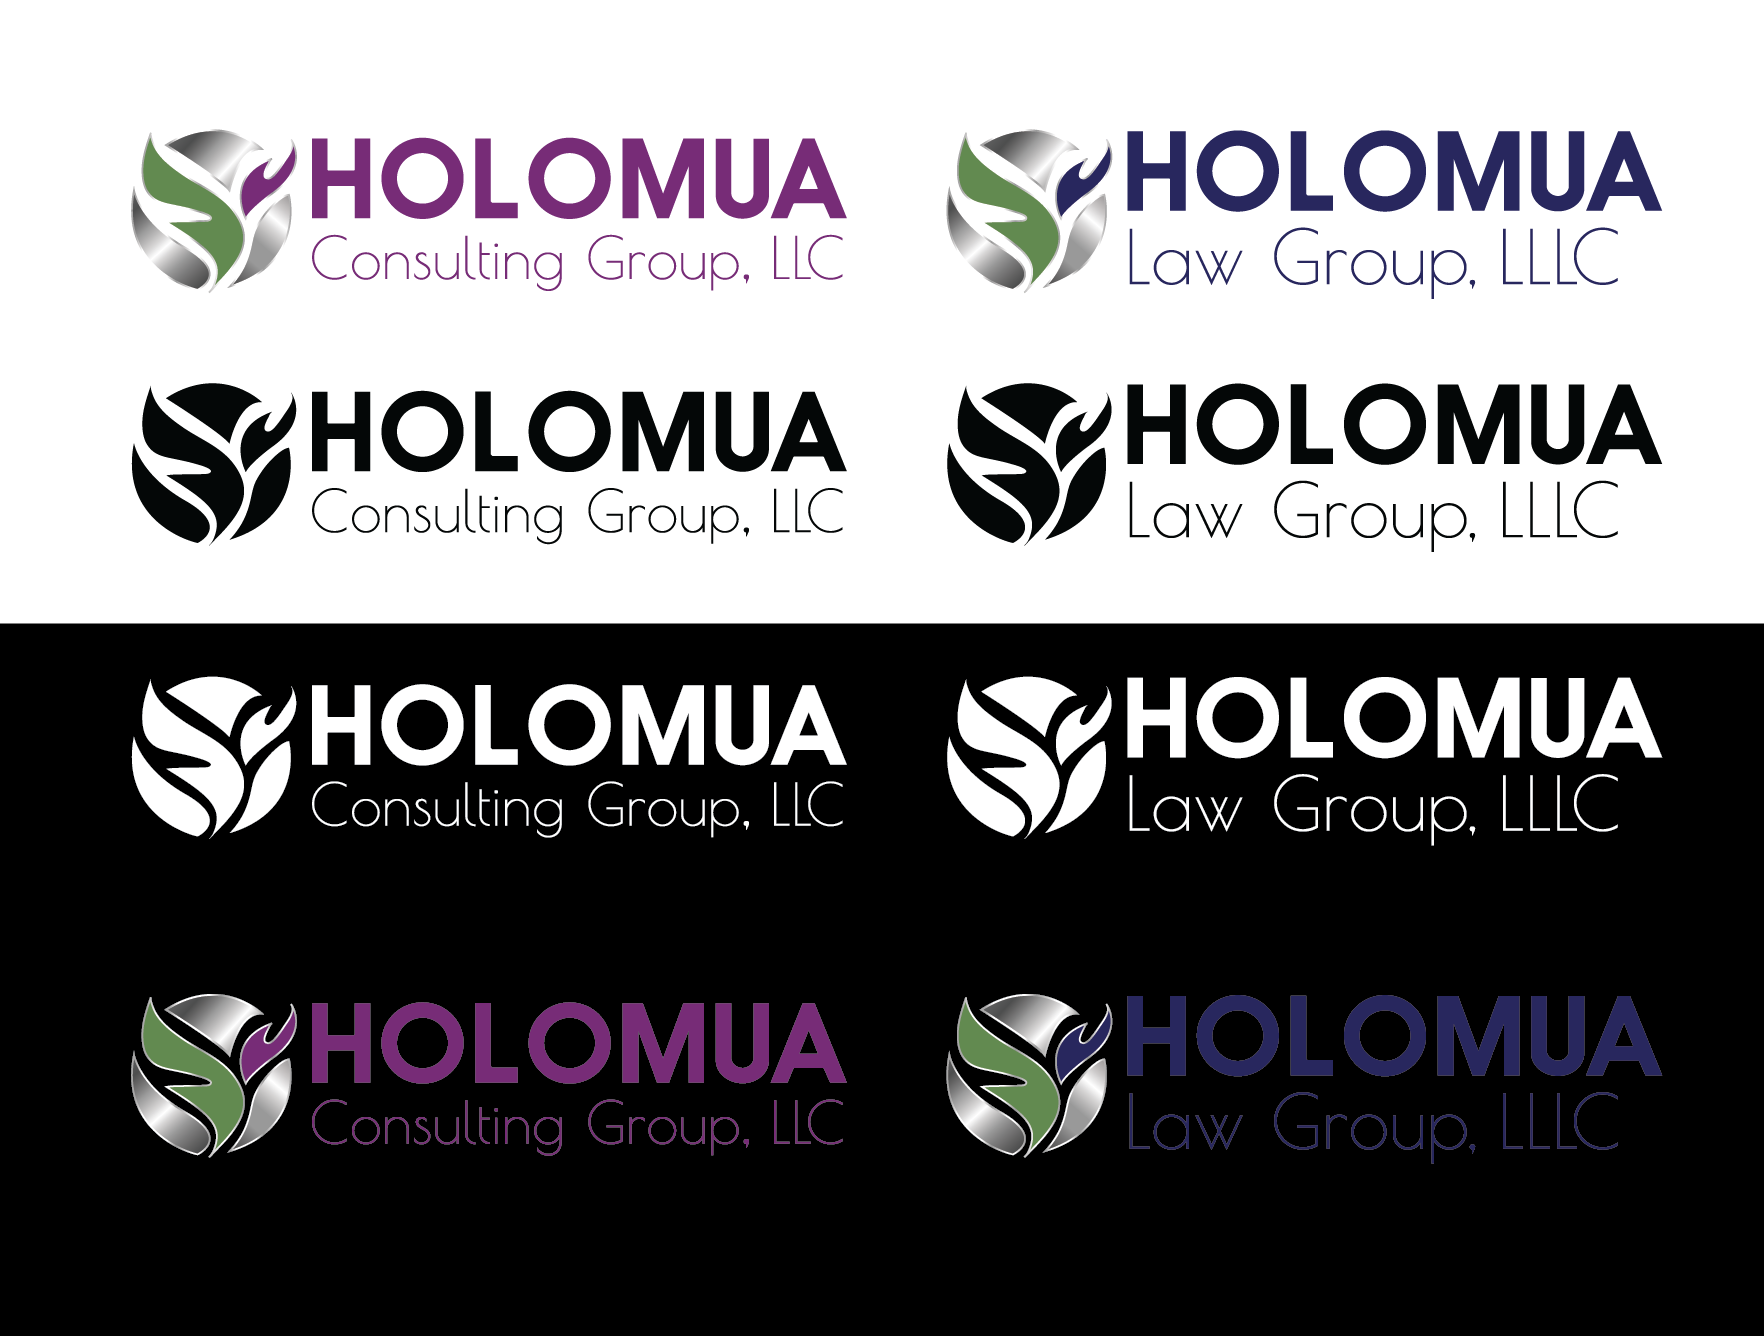 Holomua Consulting and Law Group logos